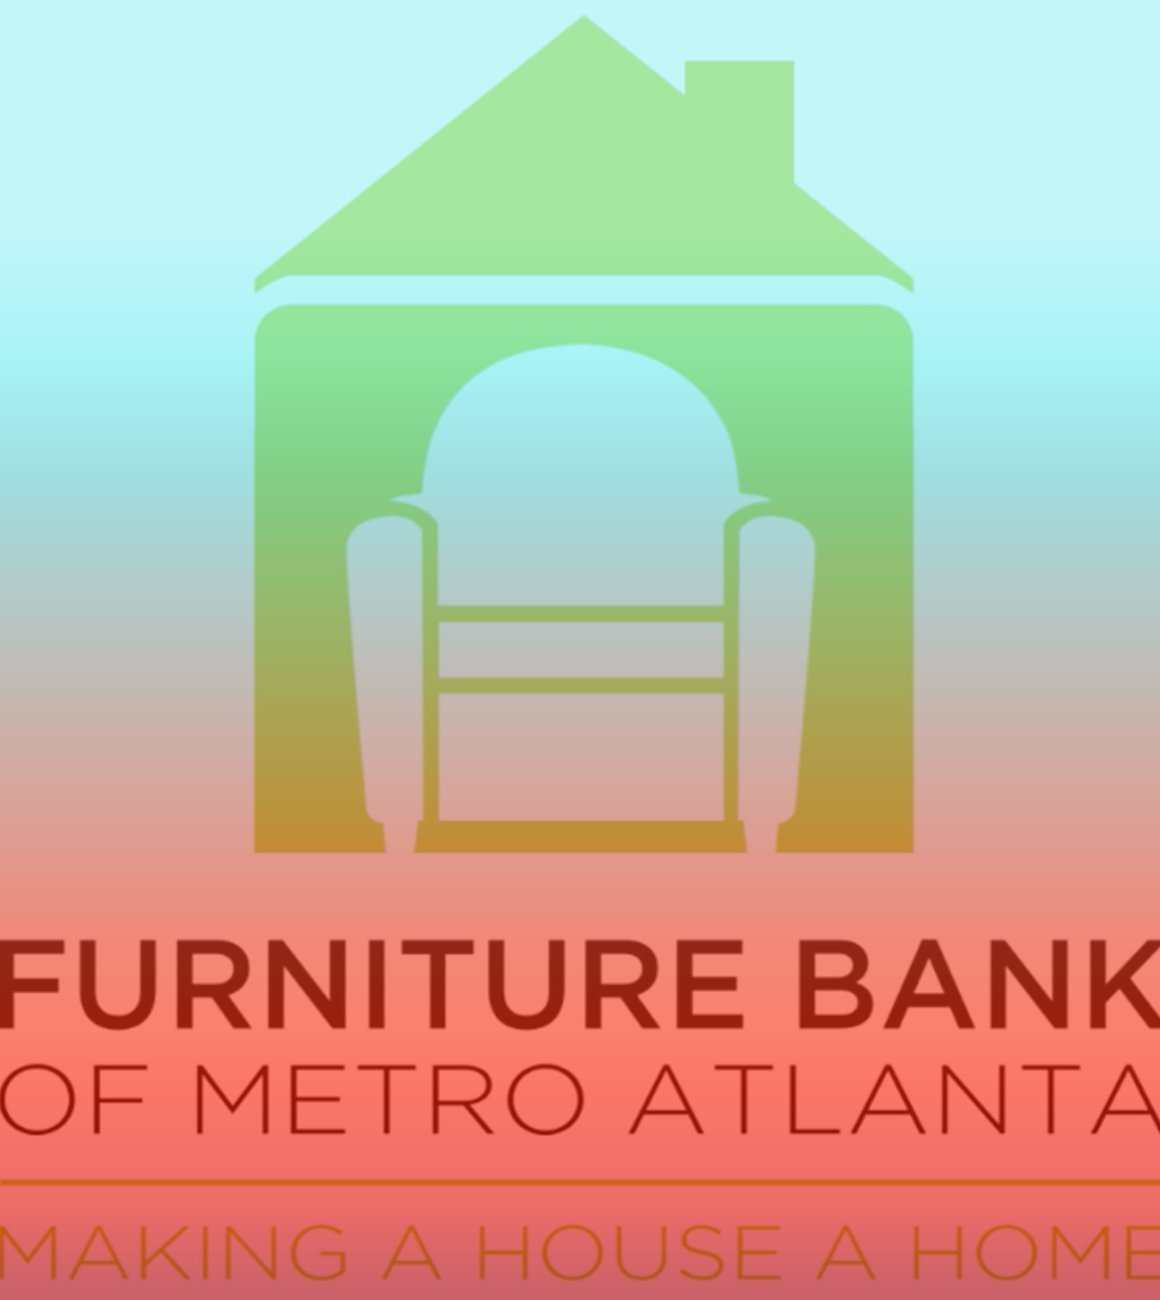 March 03, 2017   What Do Cat Videos, Dr. Seuss And The Furniture Bank Of Metro  Atlanta All Have In Common?